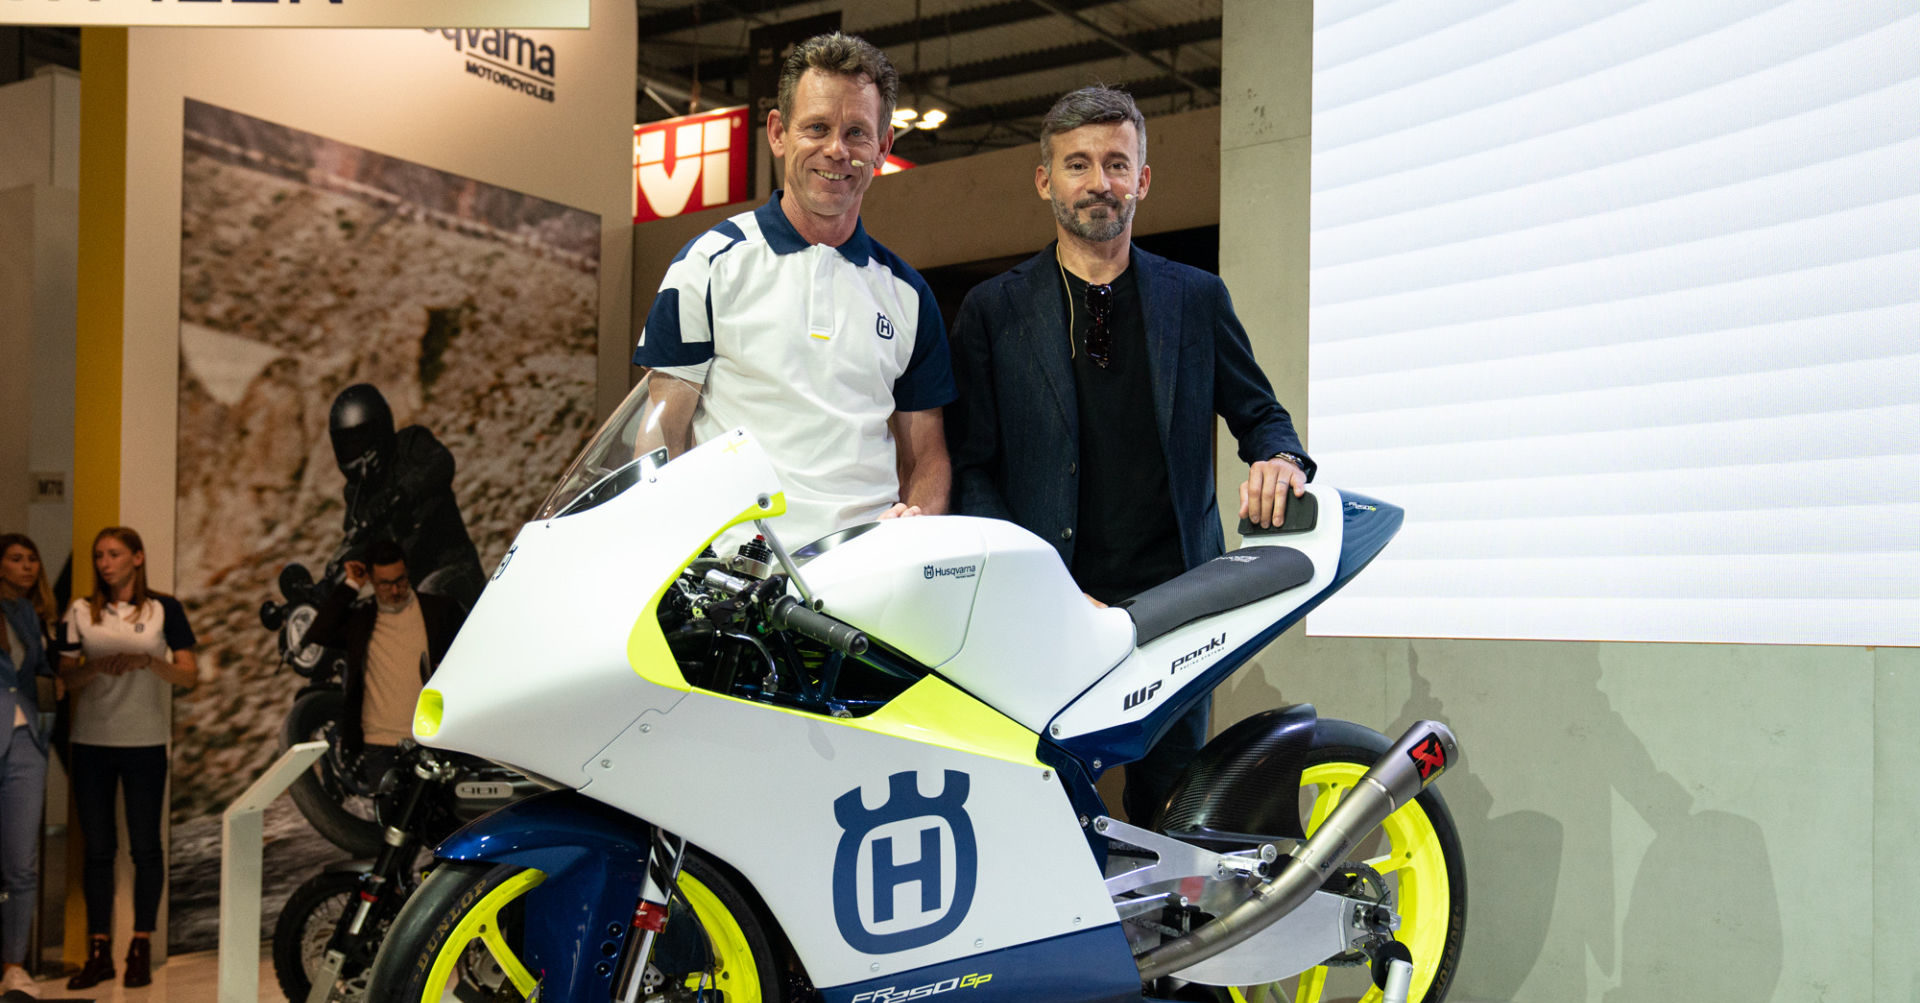 Max Racing Team Manager Peter Öttl (left), Max Racing Team Principal Max Biaggi (right), and a Husqvarna FR 250 GP Moto3 racebike. Photo courtesy of Husqvarna Motorcycles.